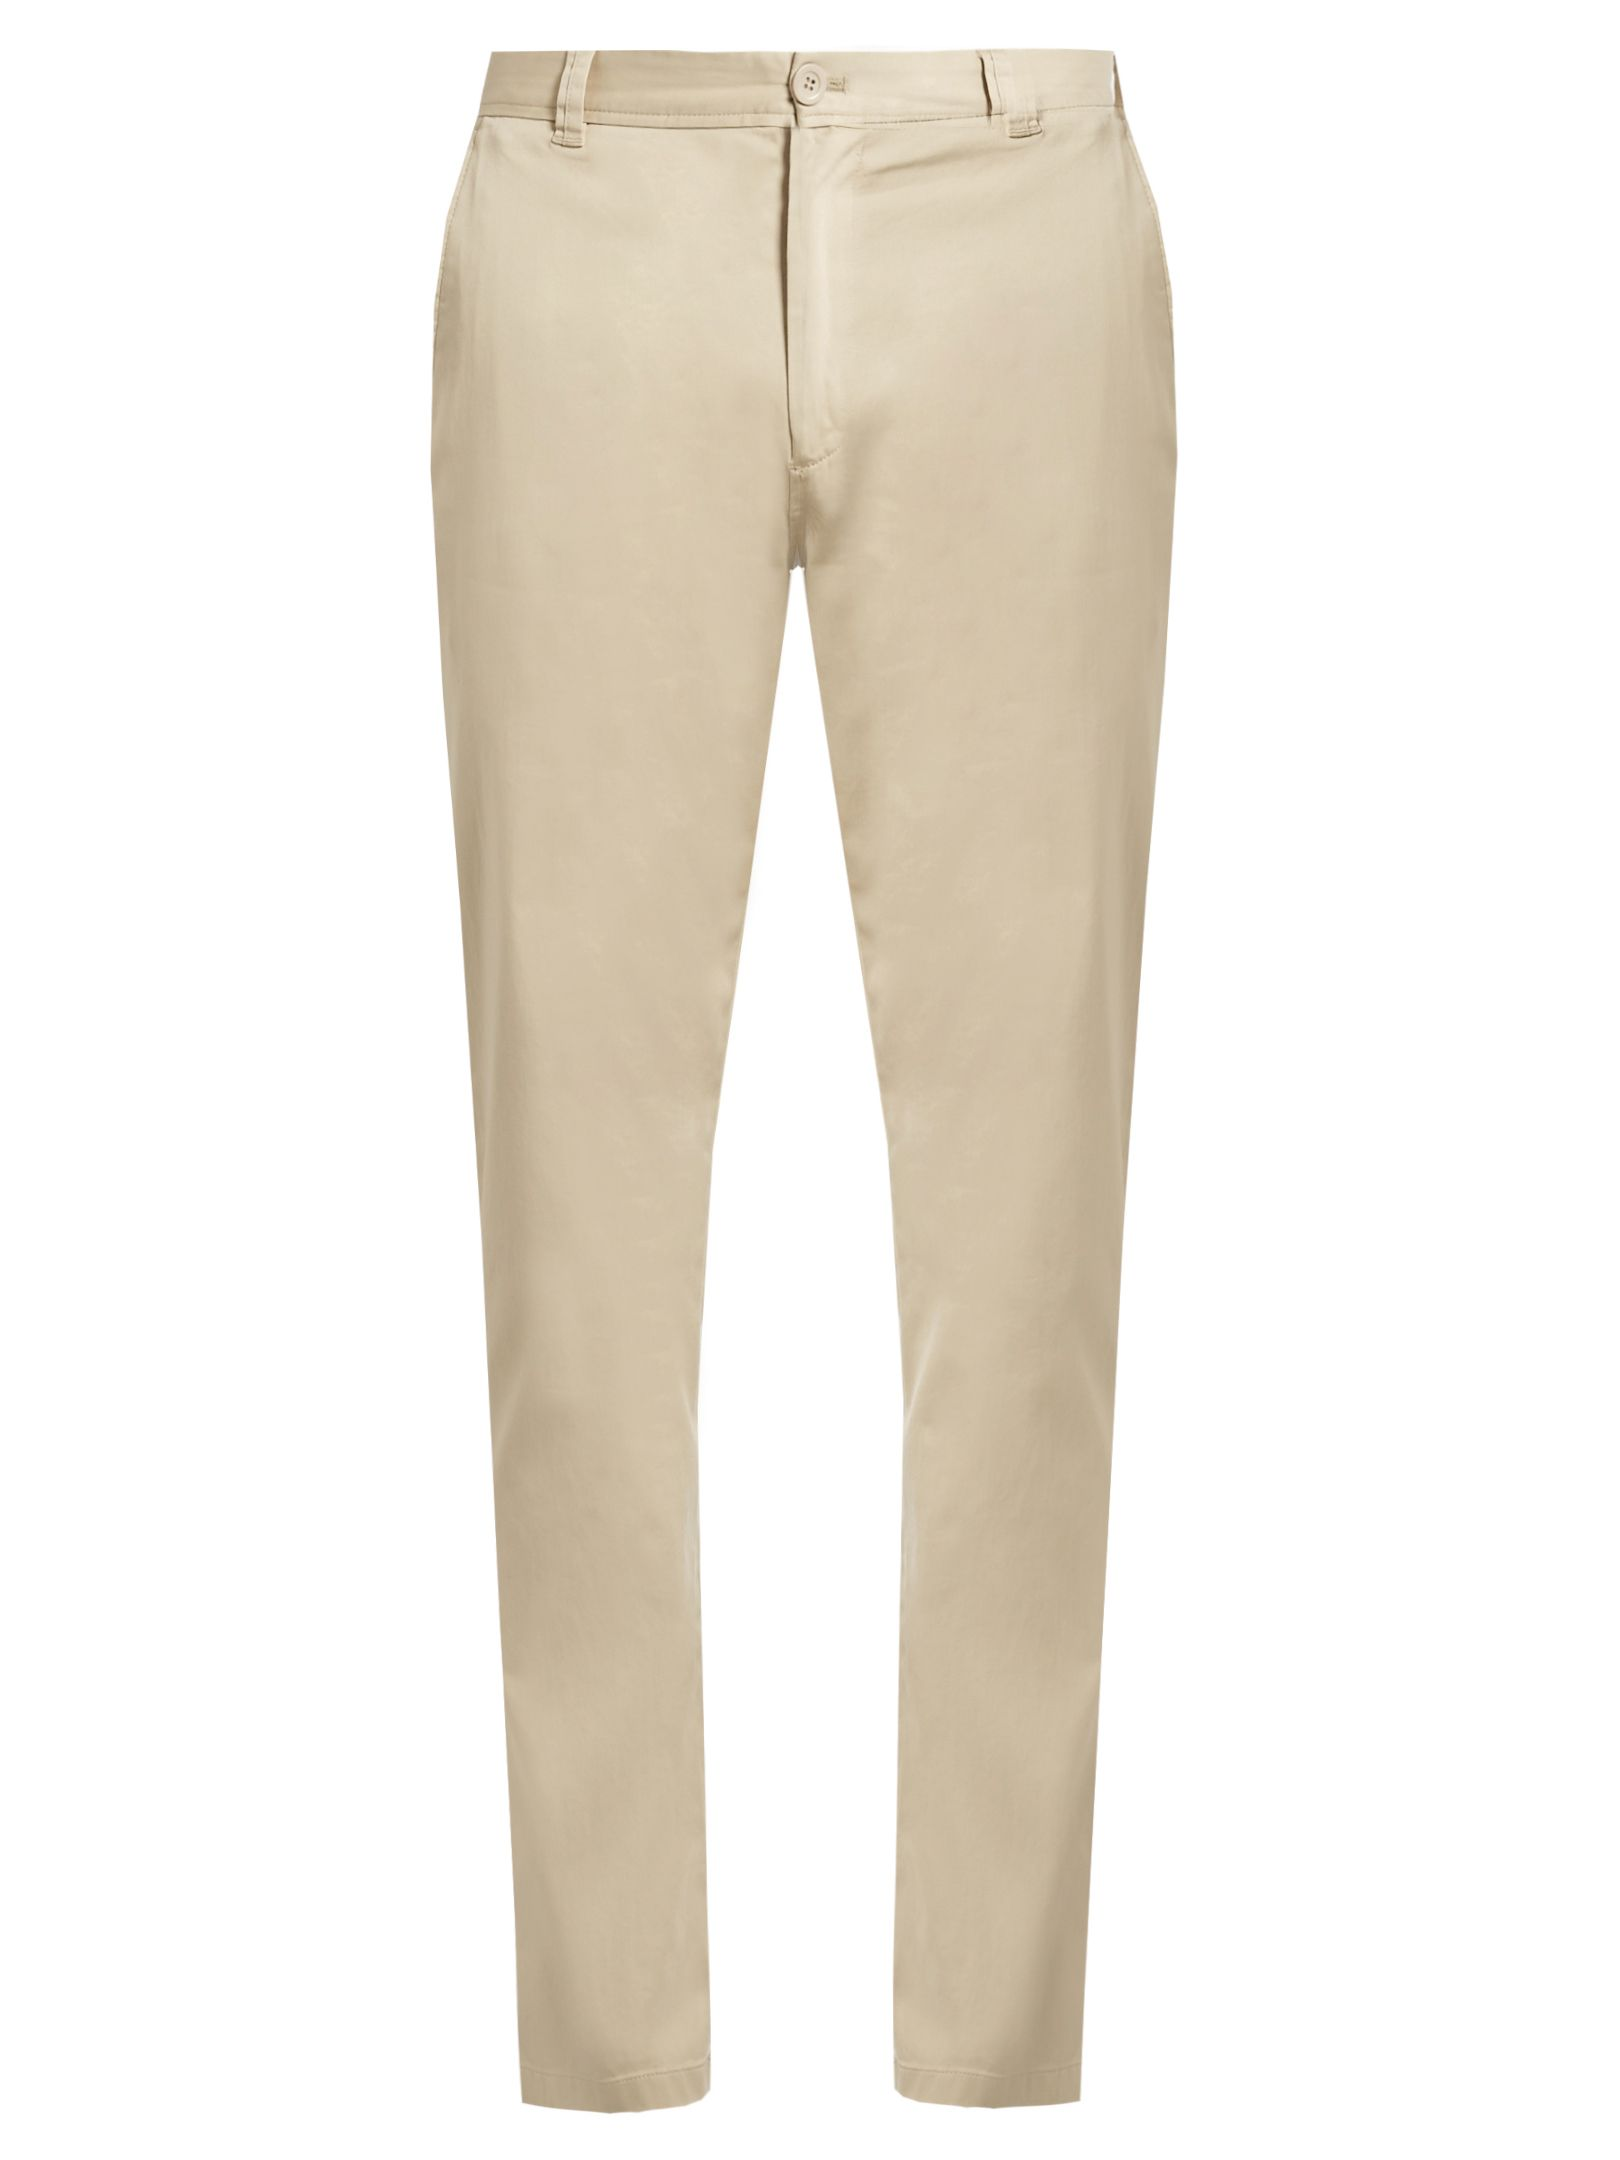 classic slim-fit chinos - Nude & Neutrals Department 5 BnRk6Jhoj